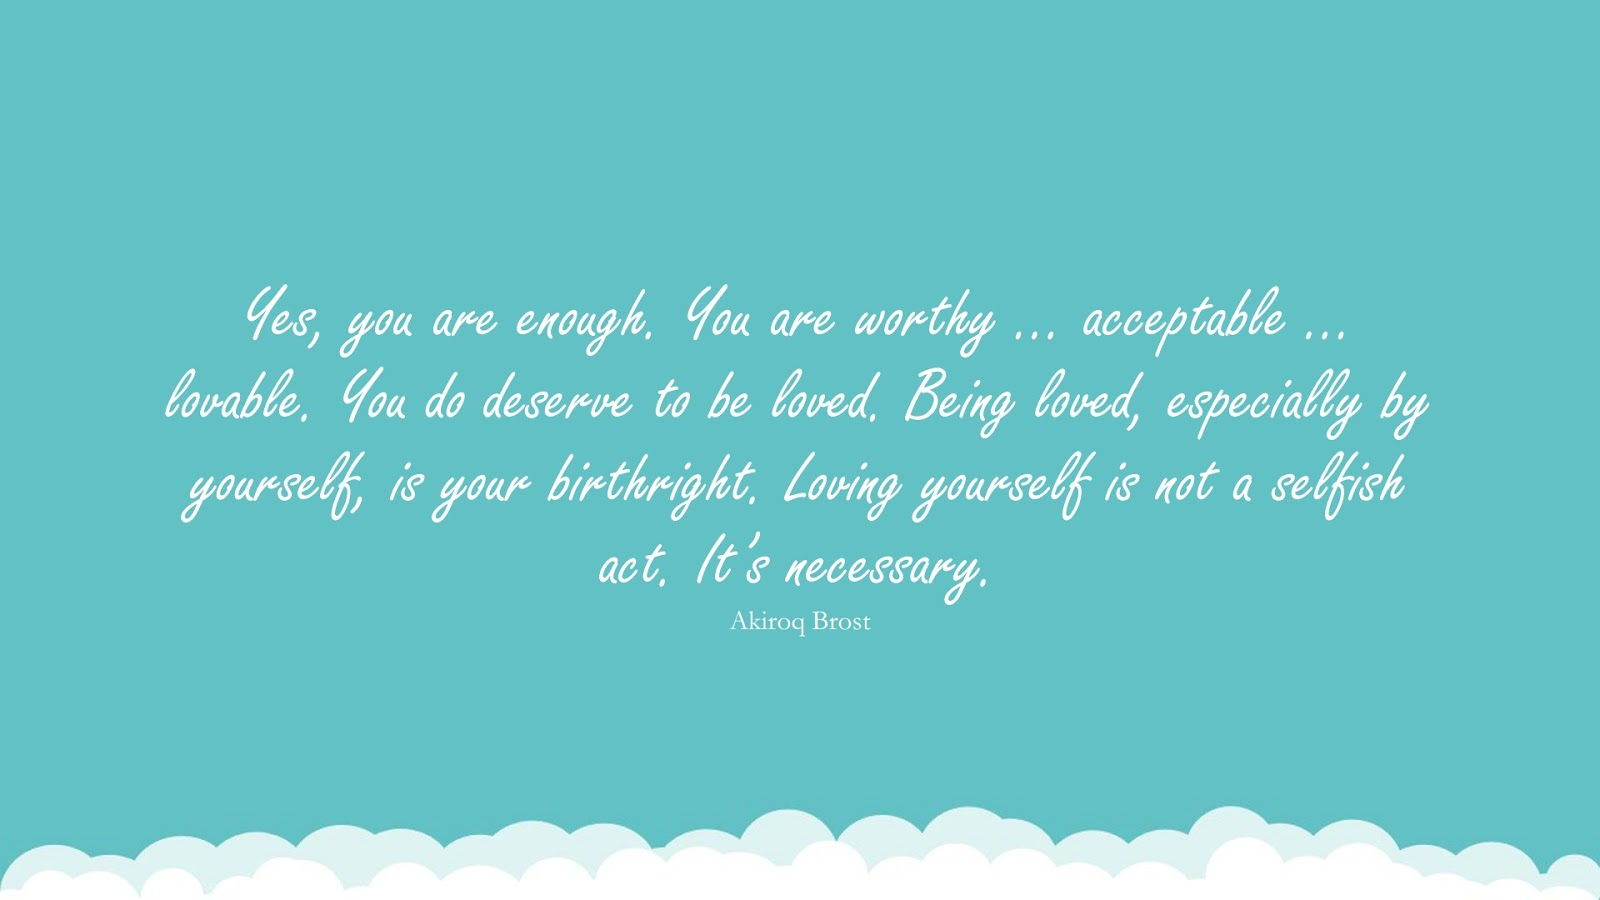 Yes, you are enough. You are worthy … acceptable … lovable. You do deserve to be loved. Being loved, especially by yourself, is your birthright. Loving yourself is not a selfish act. It's necessary. (Akiroq Brost);  #InspirationalQuotes